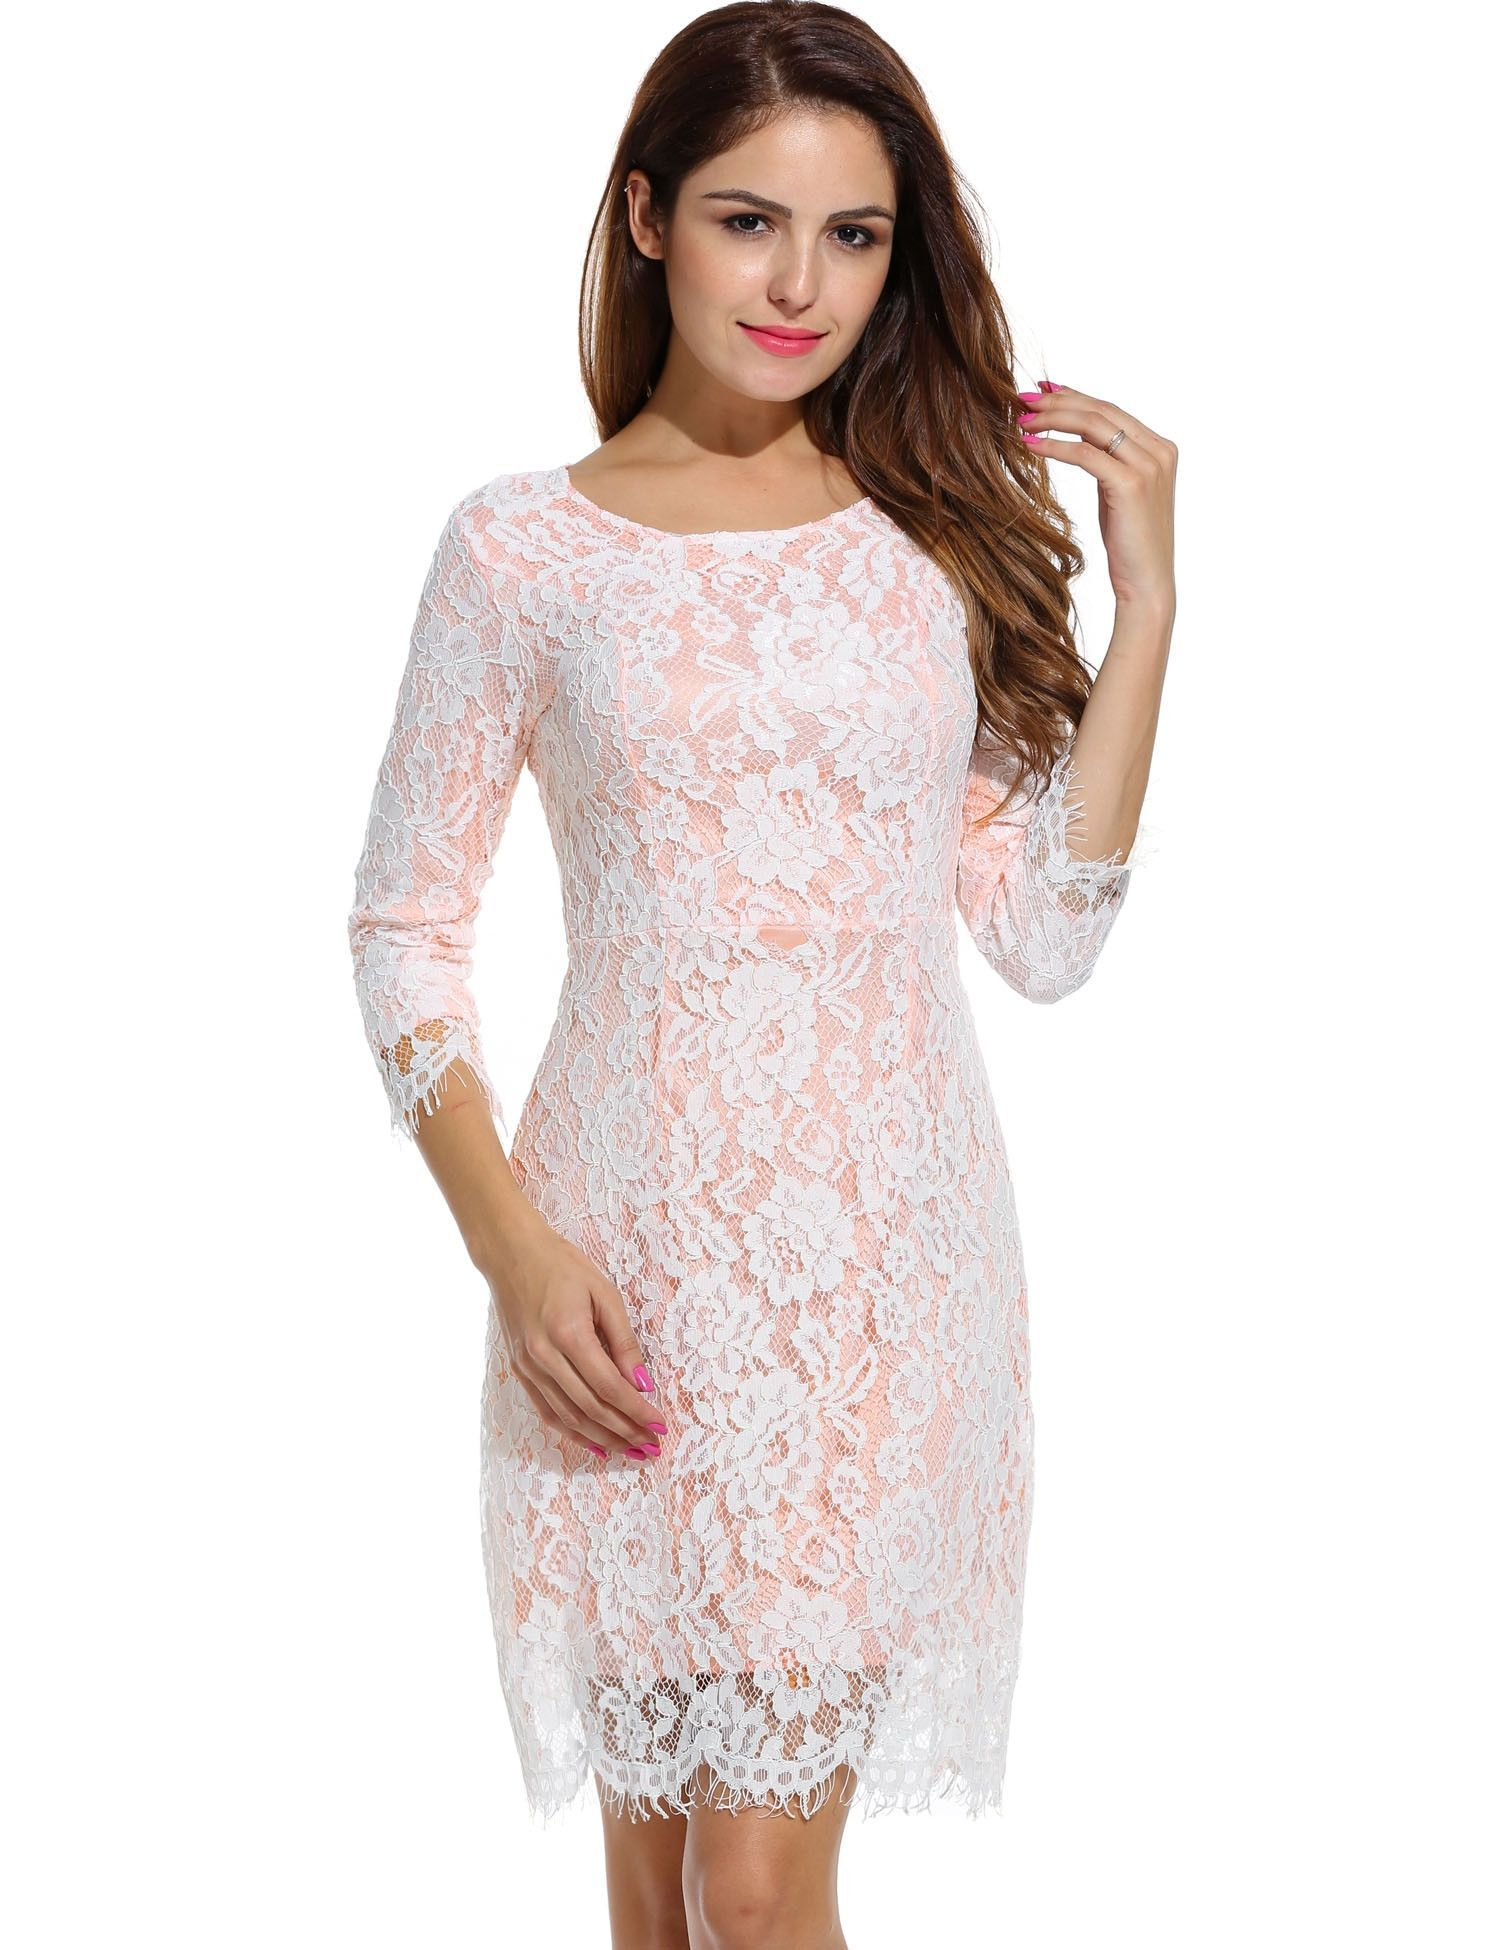 Women casual lace sleeve neck skinny waist going out dresses